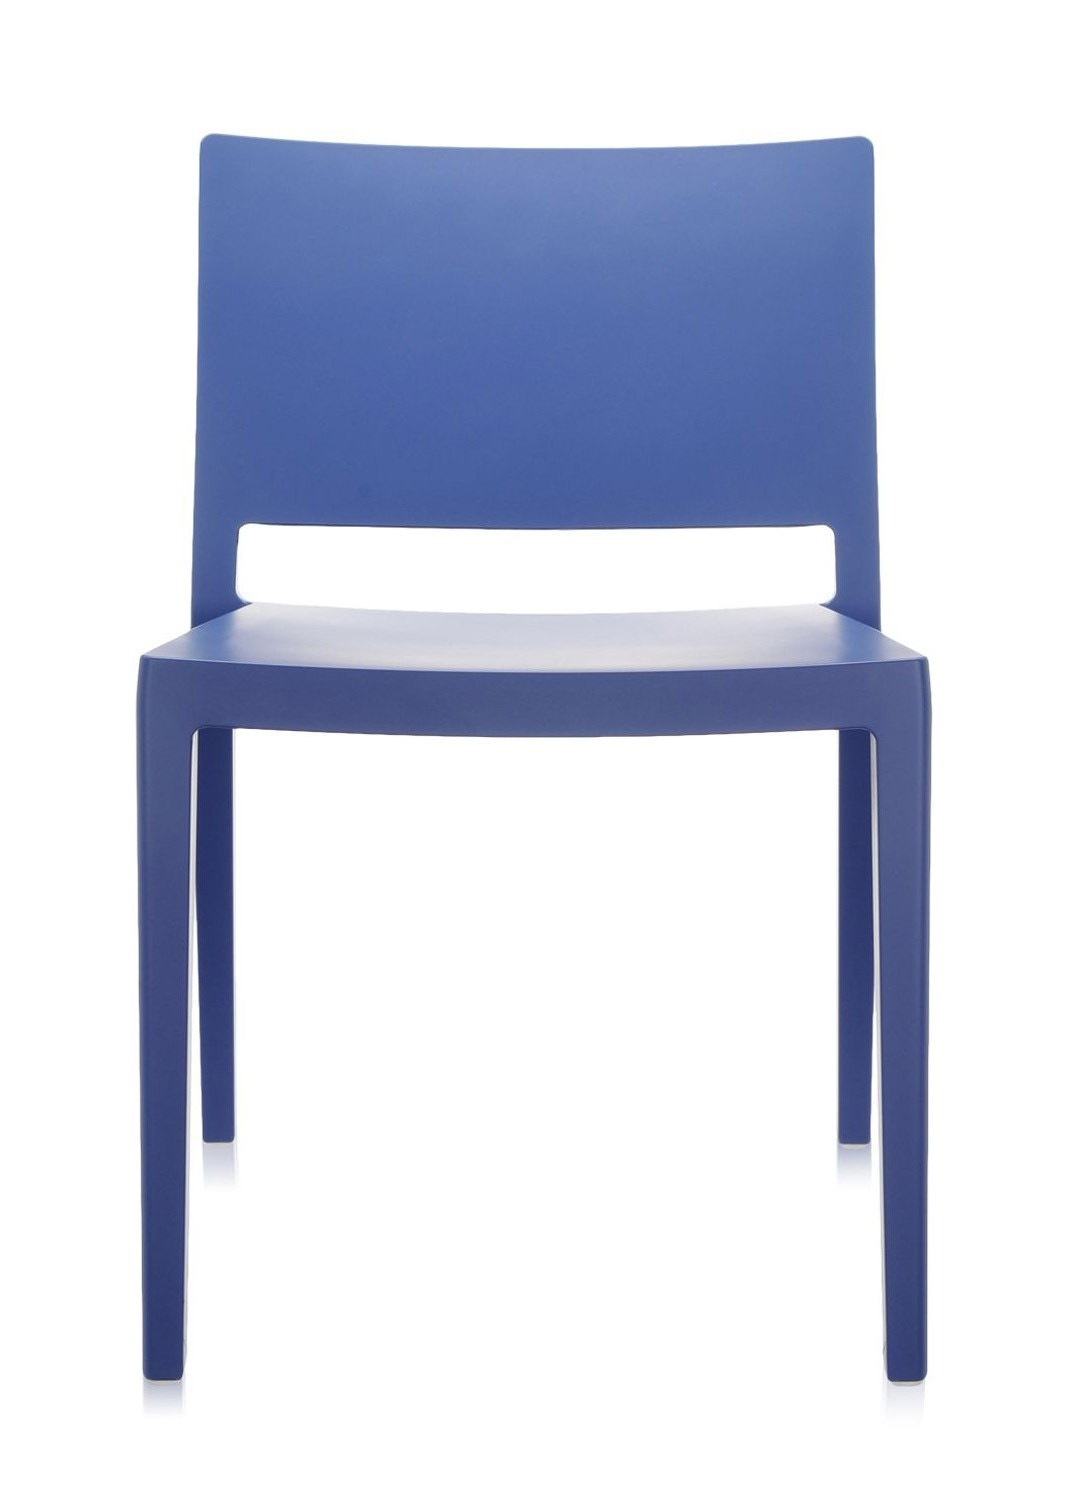 Kartell Lizz Matte Chair (Priced Each, Sold in Sets of 2)